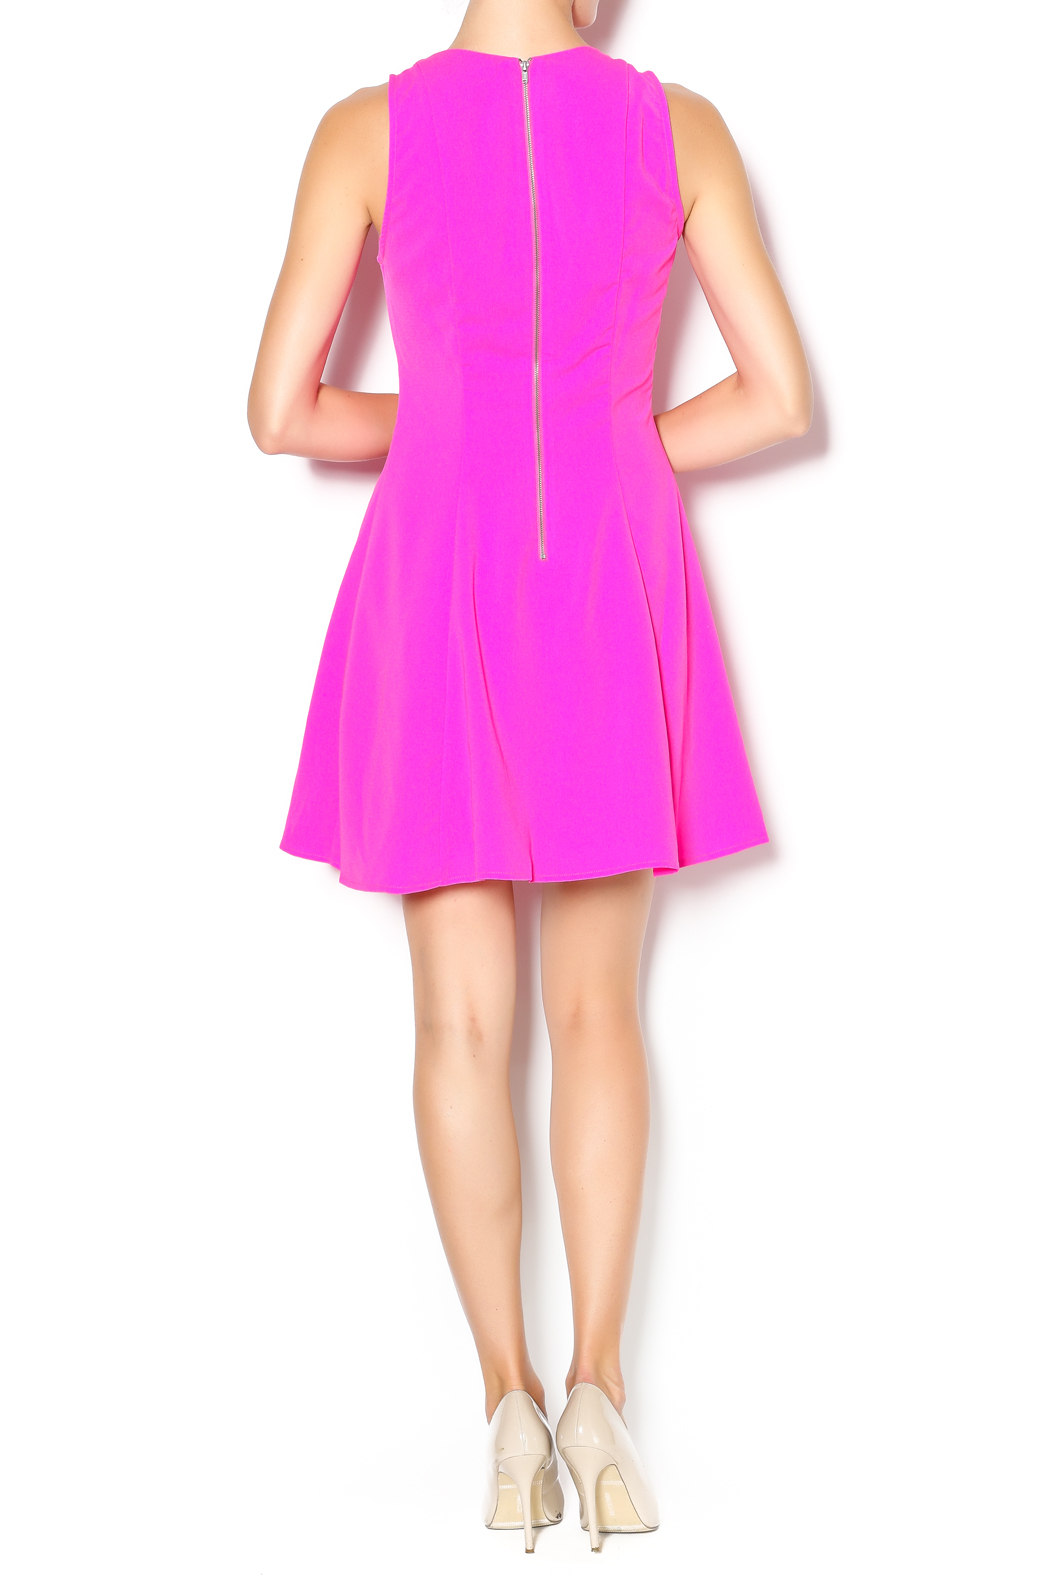 Sugar Lips Shoulder Slices Dress From Boston By Hello